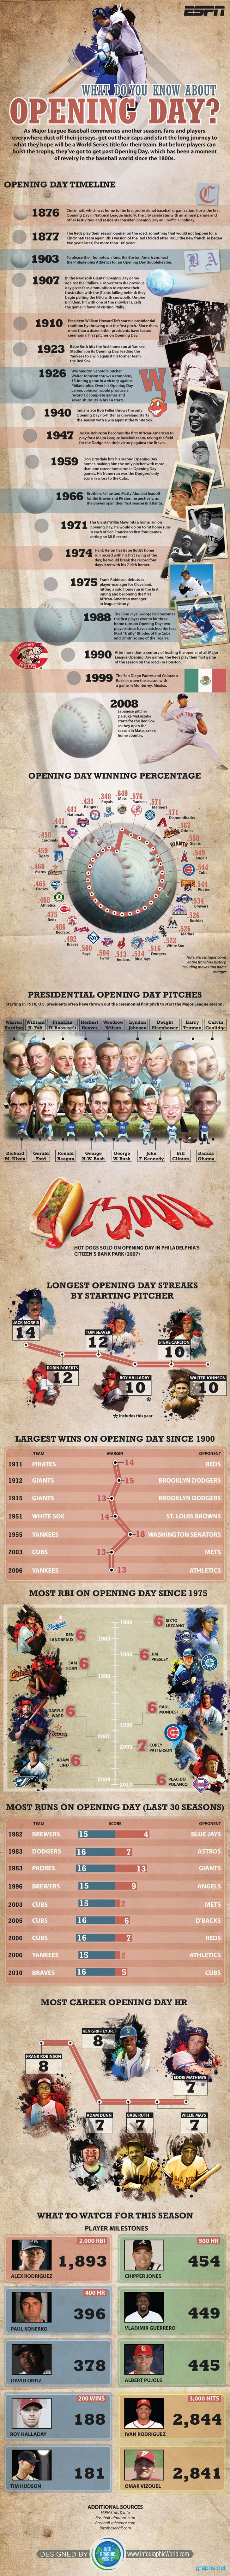 Opening Day Facts